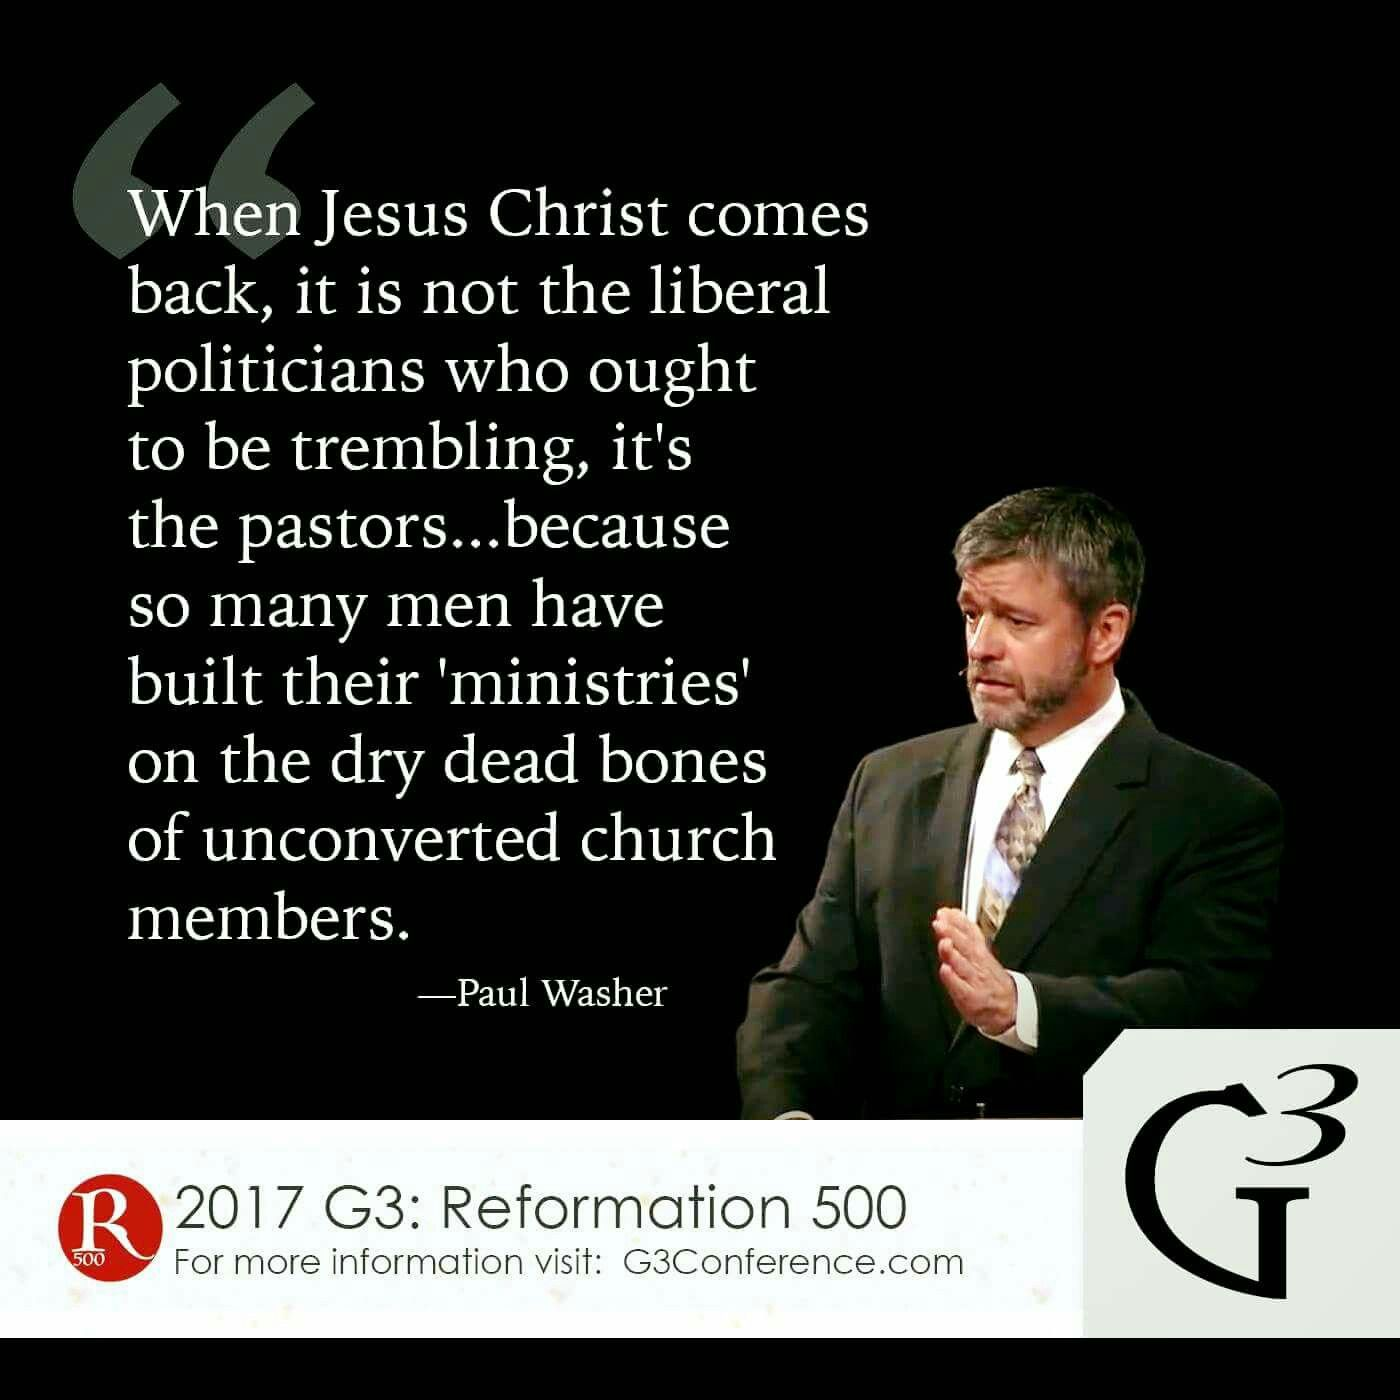 christian quotes Paul Washer quotes pastors false